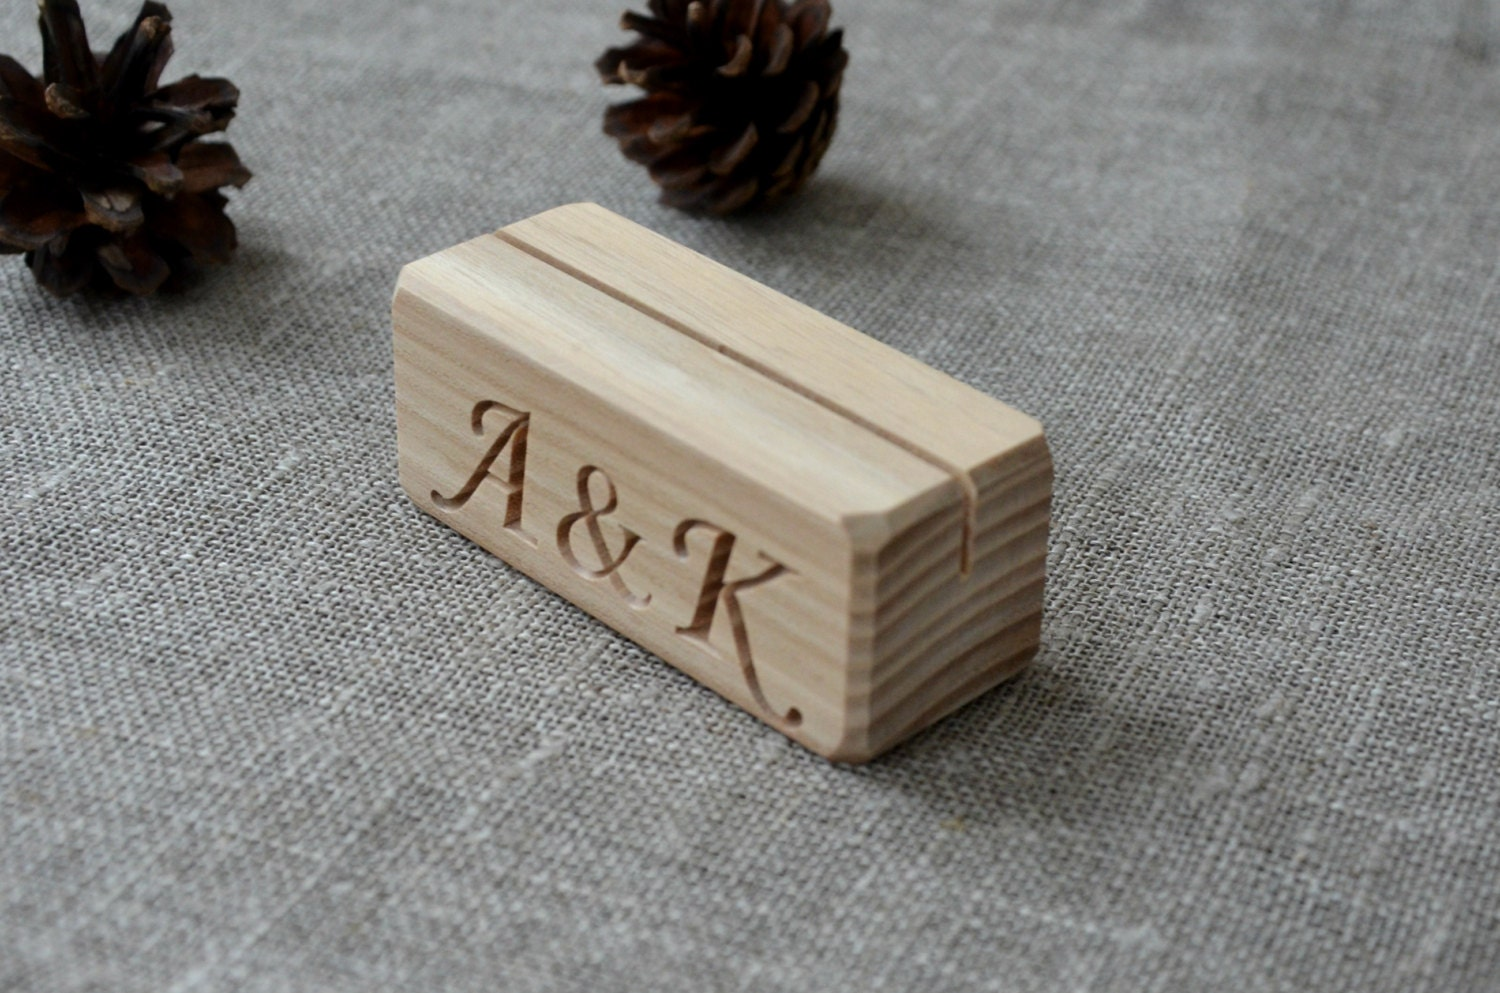 10 personalized wood place card holders for weddings diy for Personalized wedding place cards